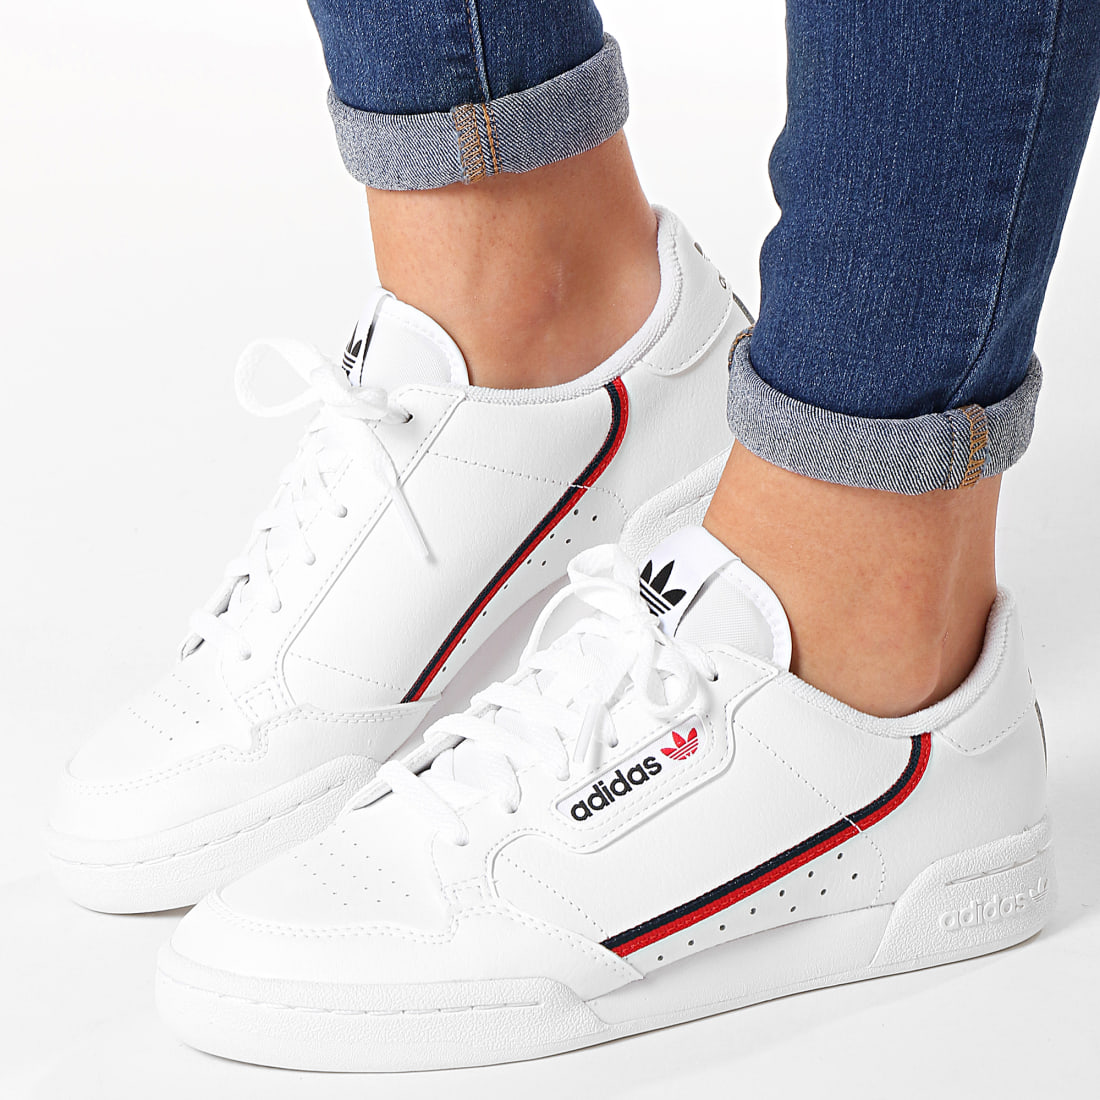 adidas continental femme chaussures